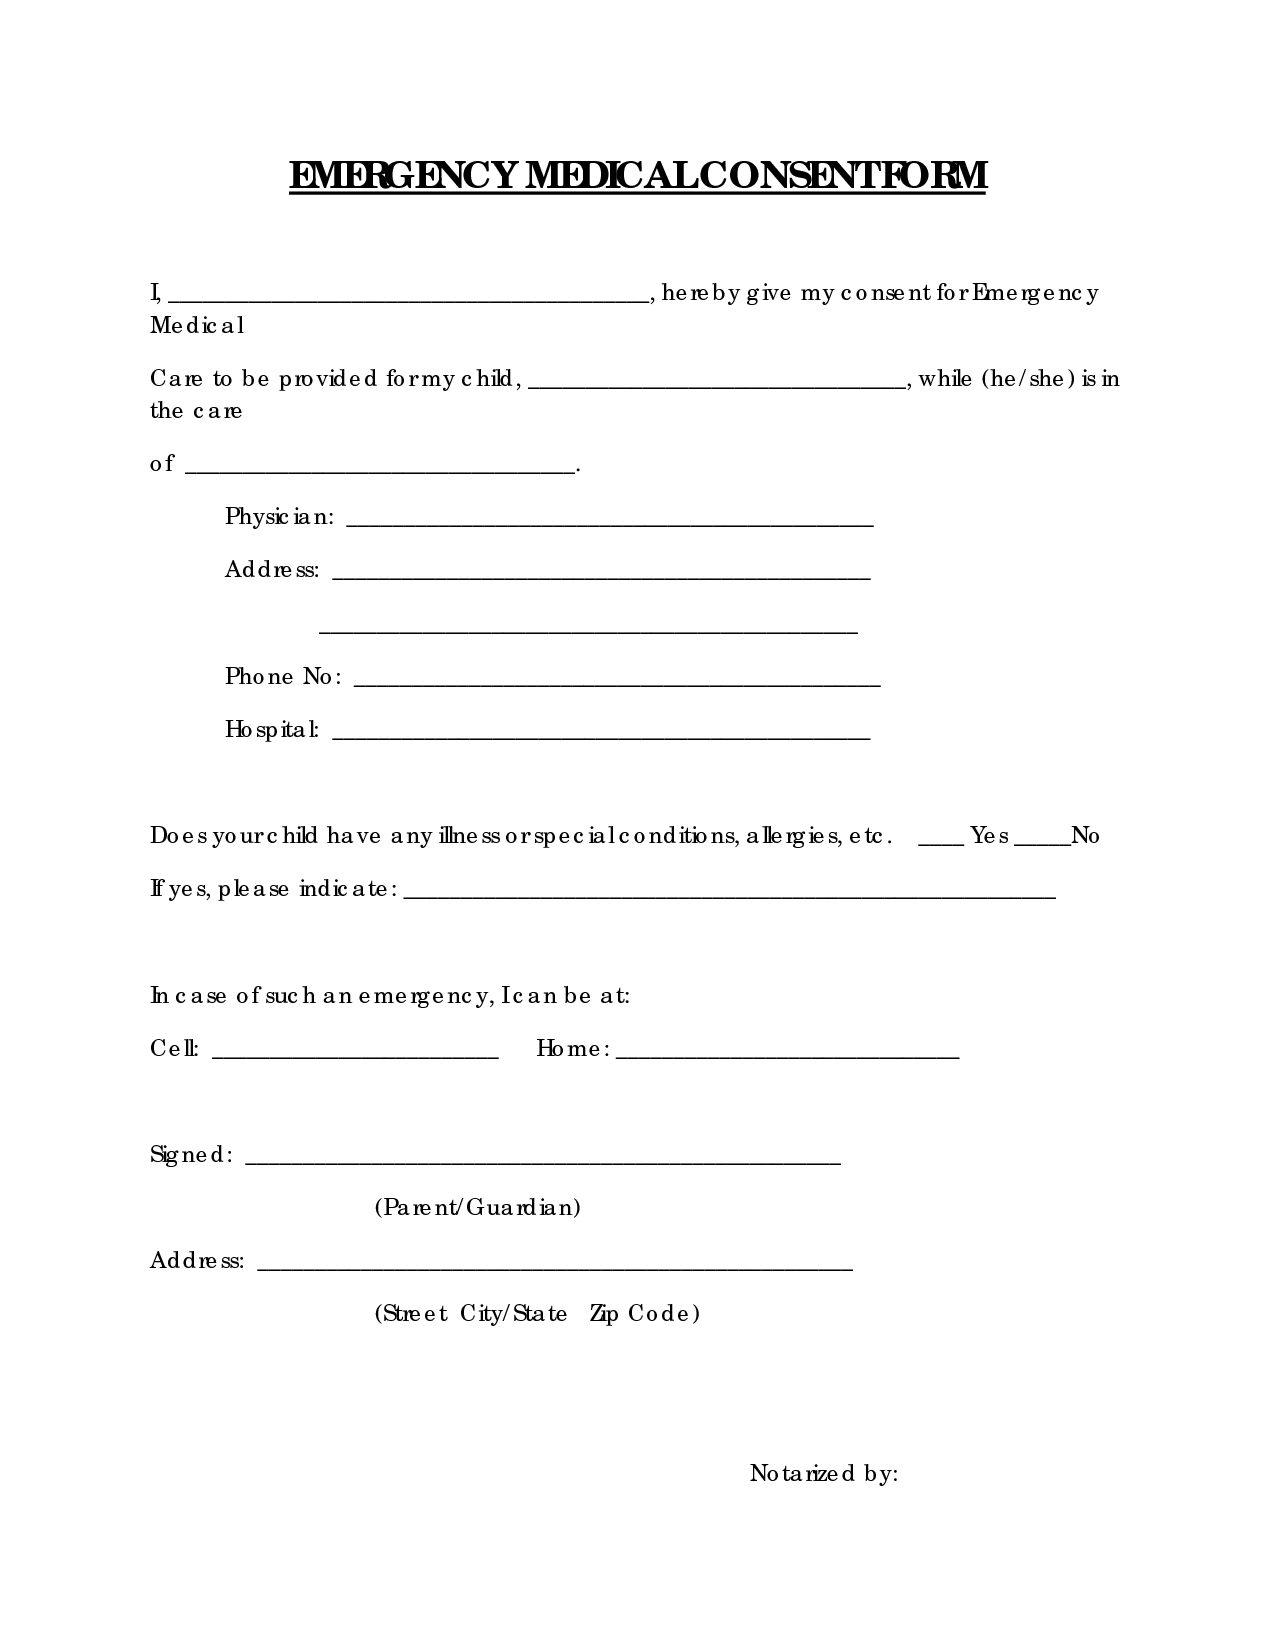 Free Printable Medical Consent Form | Emergency Medical Consent Form - Free Printable Child Medical Consent Form